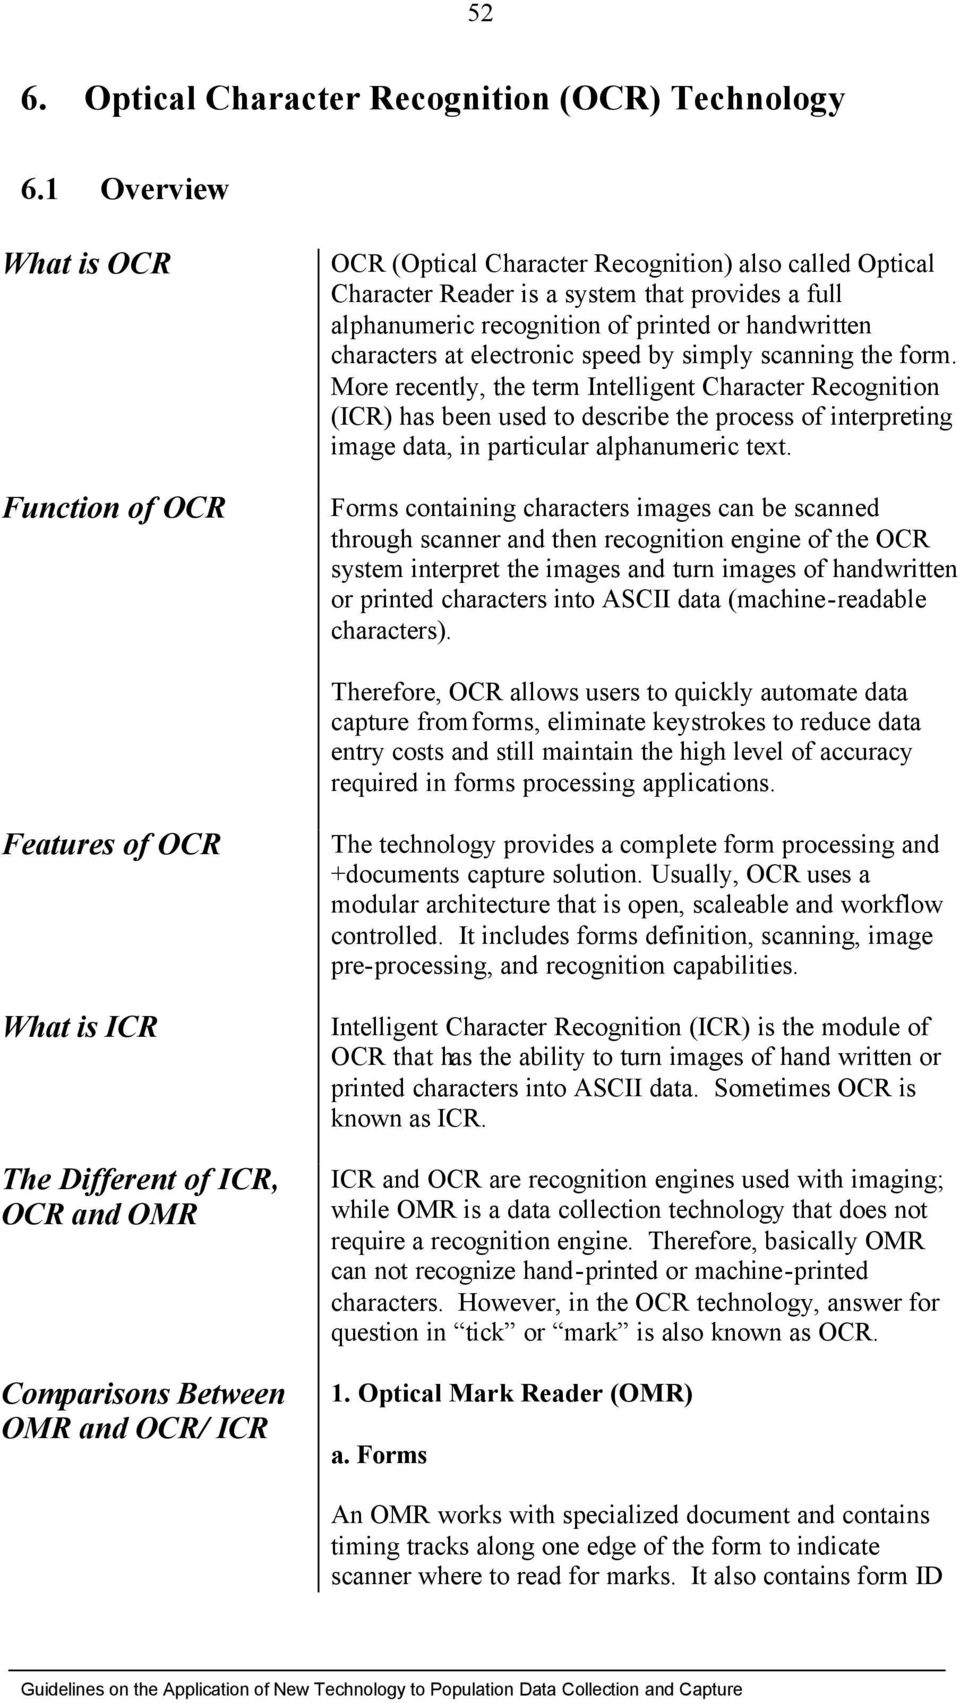 6  Optical Character Recognition (OCR) Technology - PDF